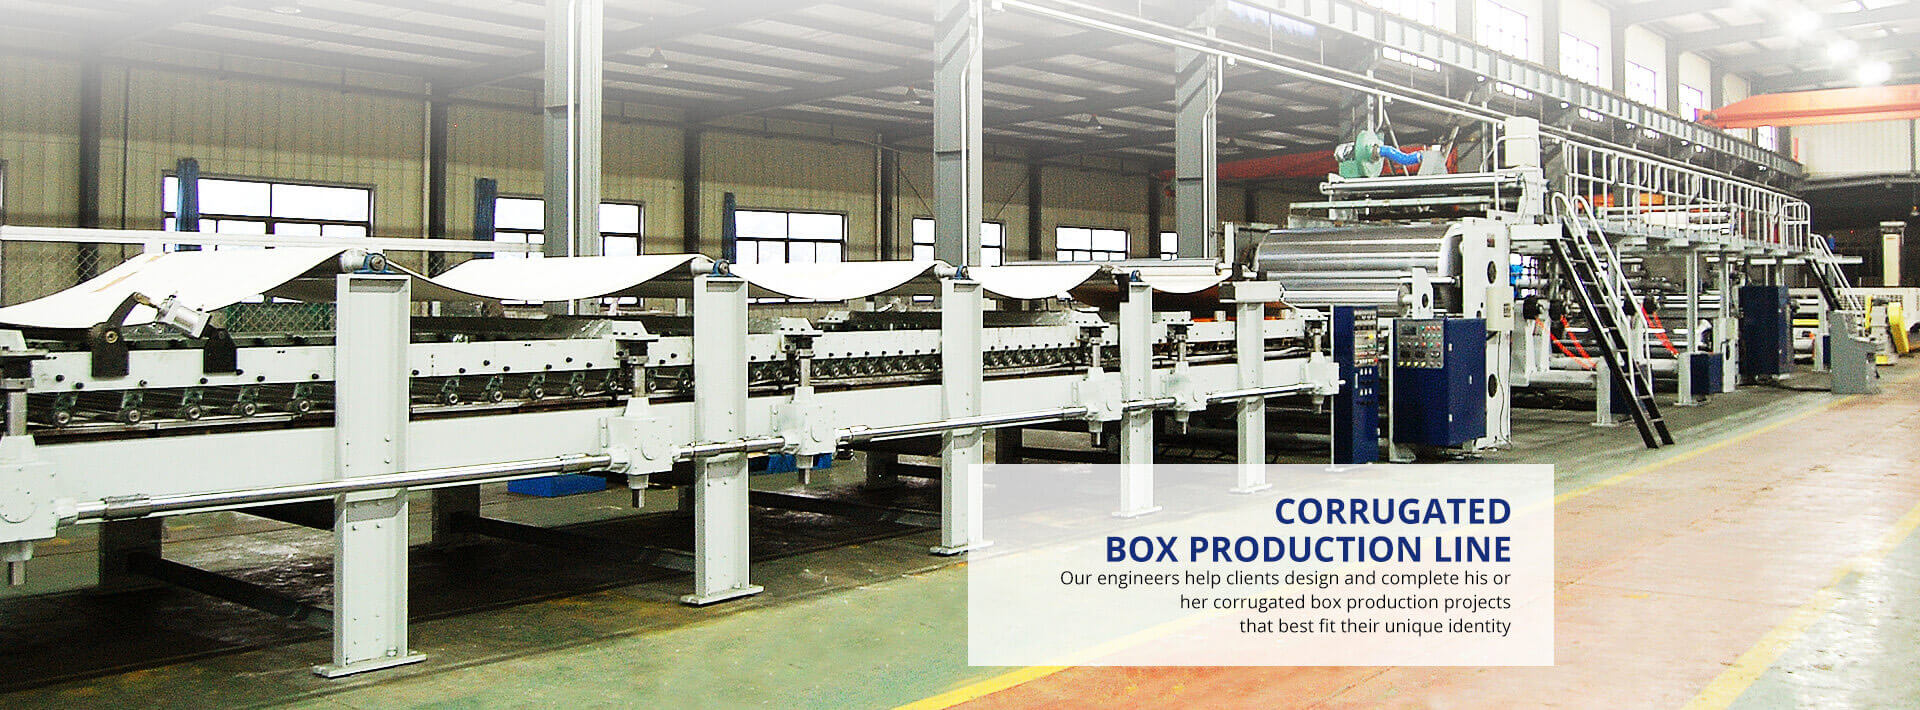 Corrugator Cardboard Production Line